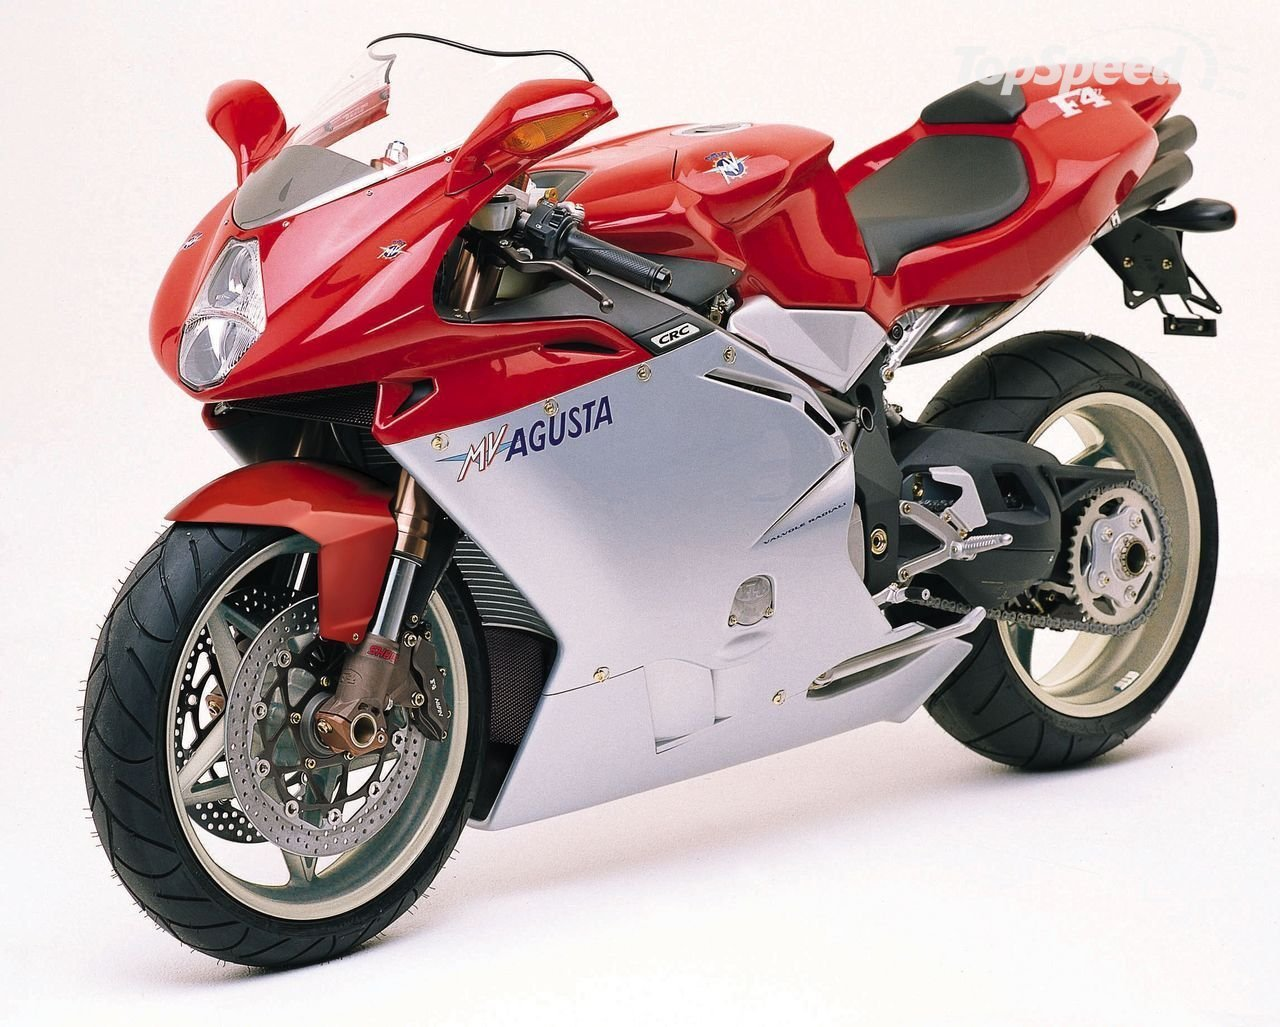 MV Agusta F4 1000 S 2006 images #113594